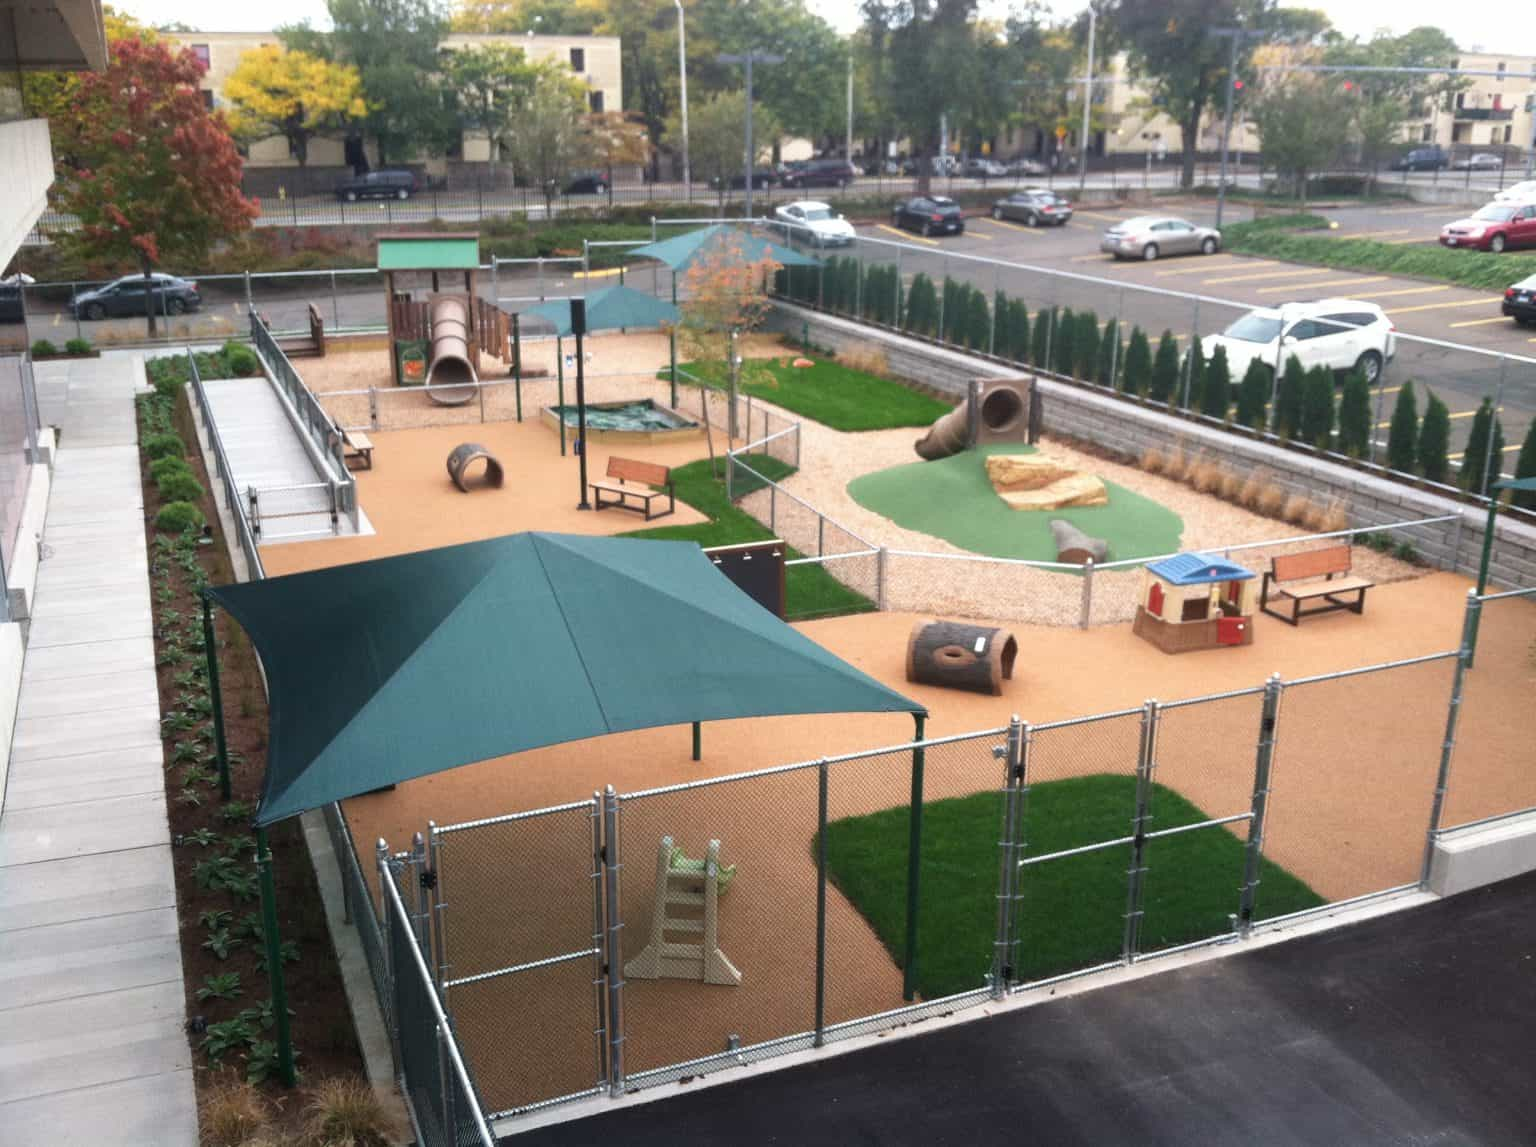 phyllis-bodel-daycare-playground-new-haven-ct_17506985173_o-1536x1147